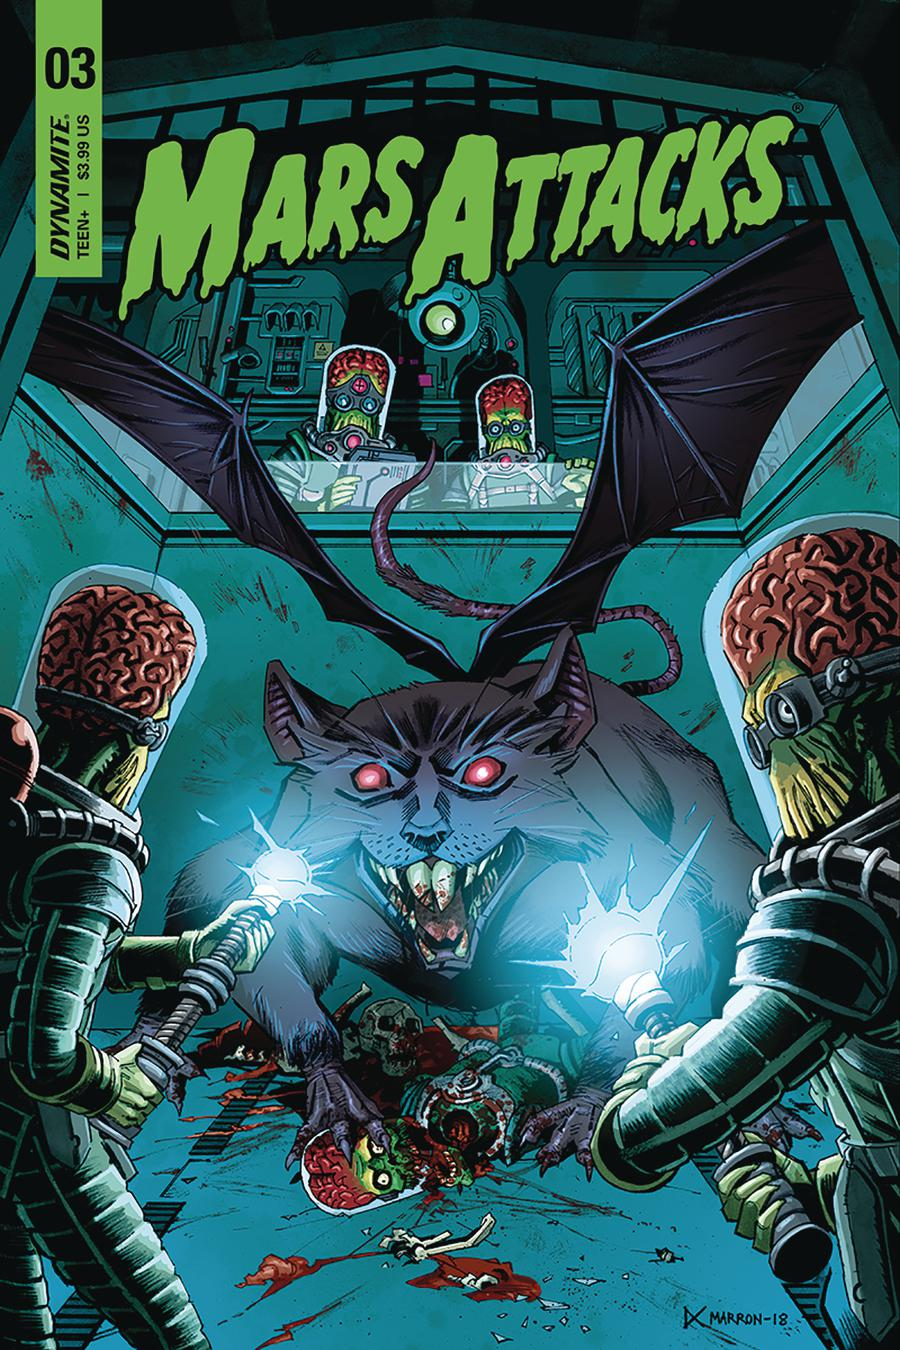 Mars Attacks Vol 4 #3 Cover C Variant Eoin Marron Cover